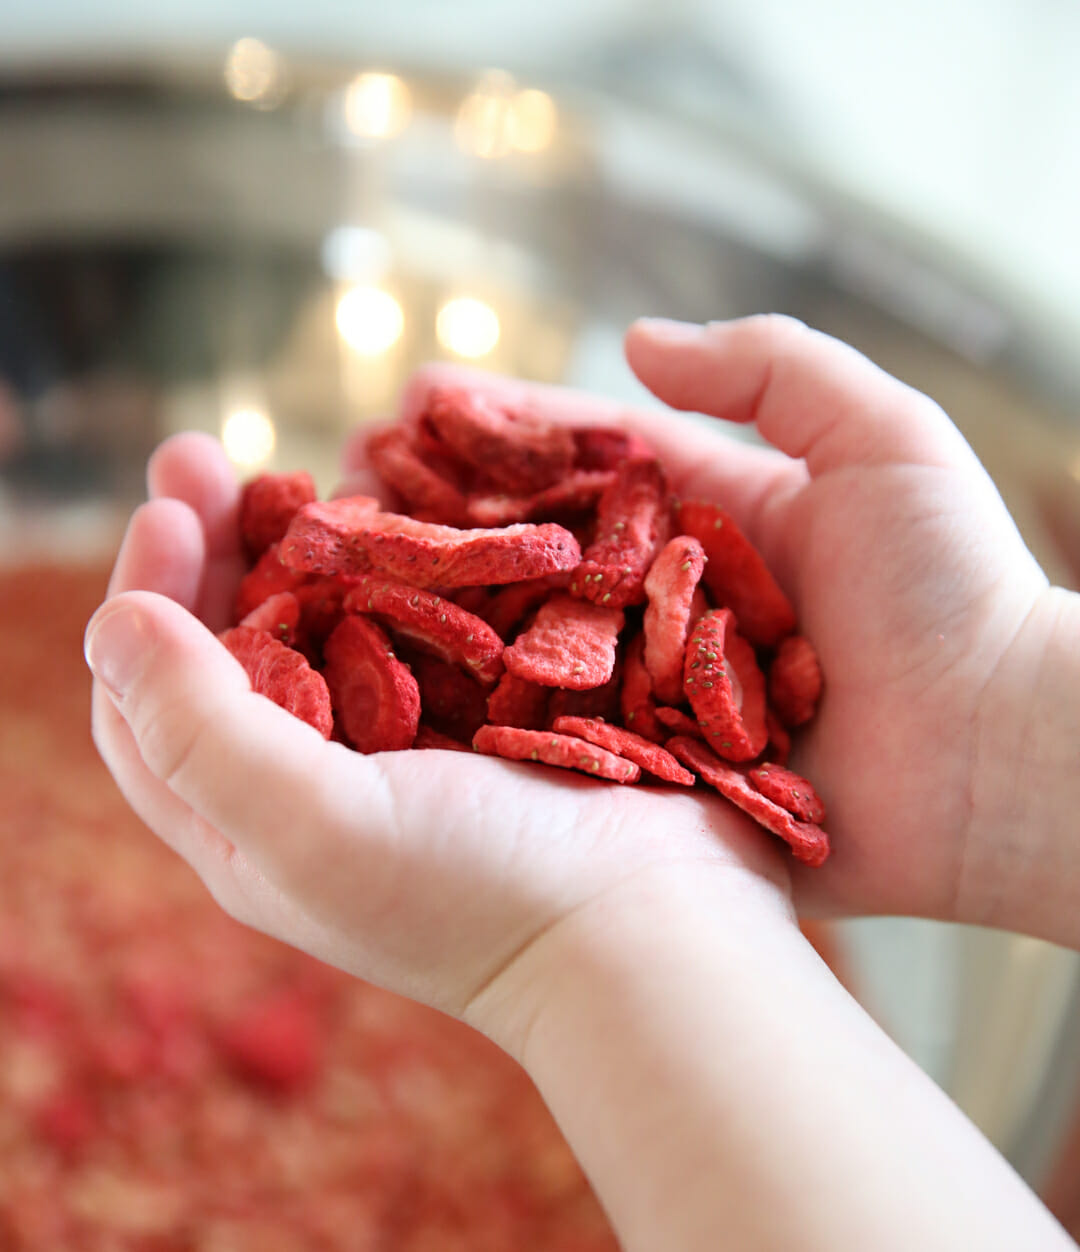 freeze dried berries in hands